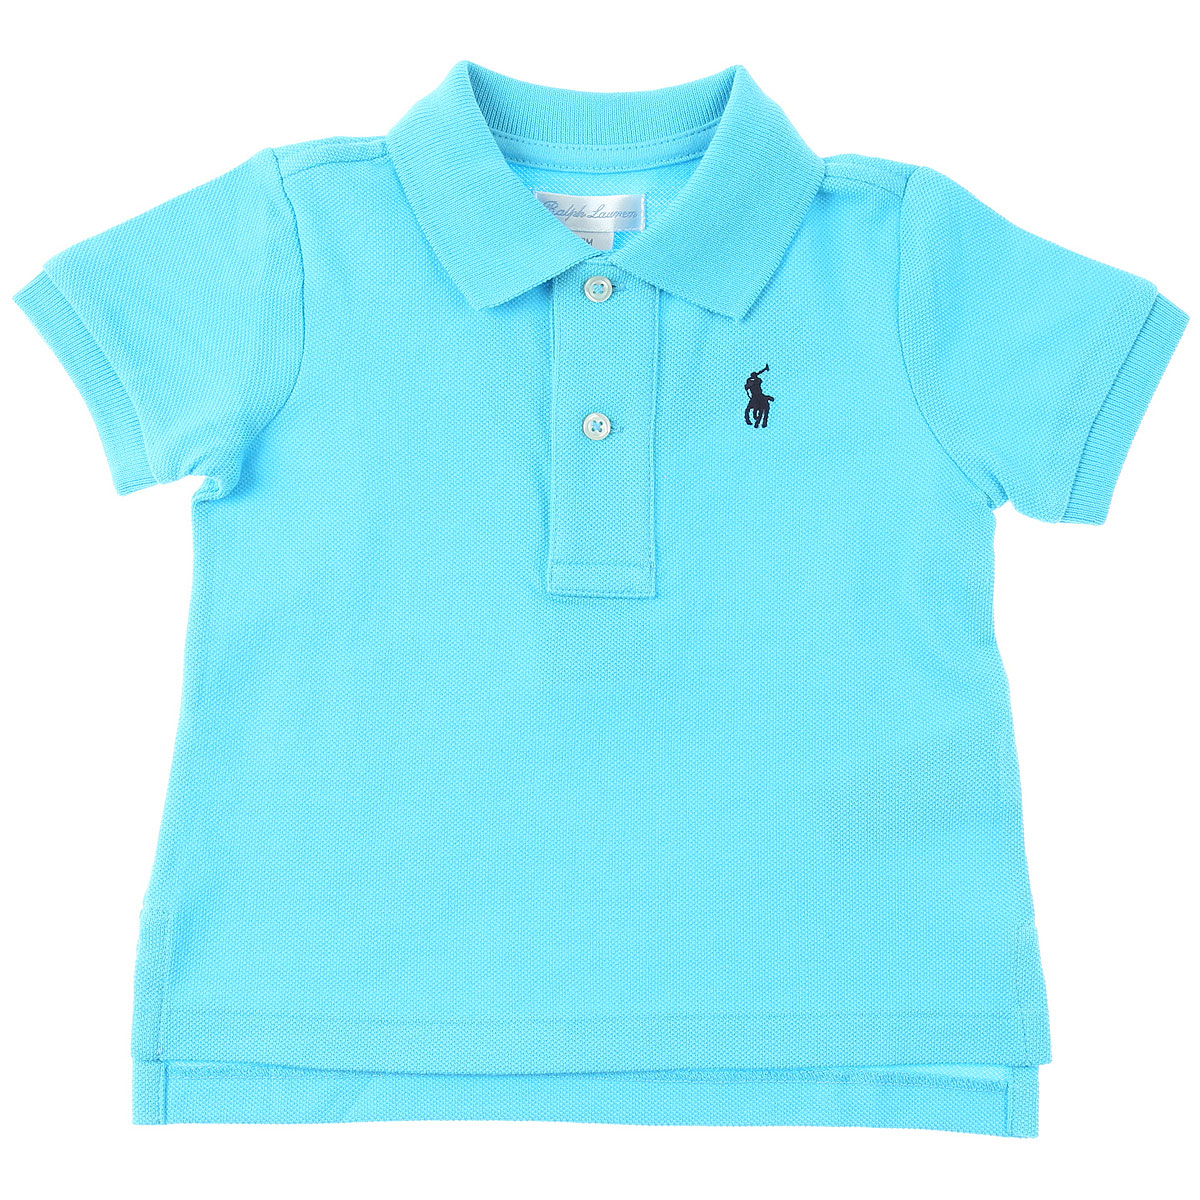 Ralph Lauren Baby Polo Shirt for Boys On Sale, Cyan Blue, Cotton, 2019, 2Y 3M 6M 9M